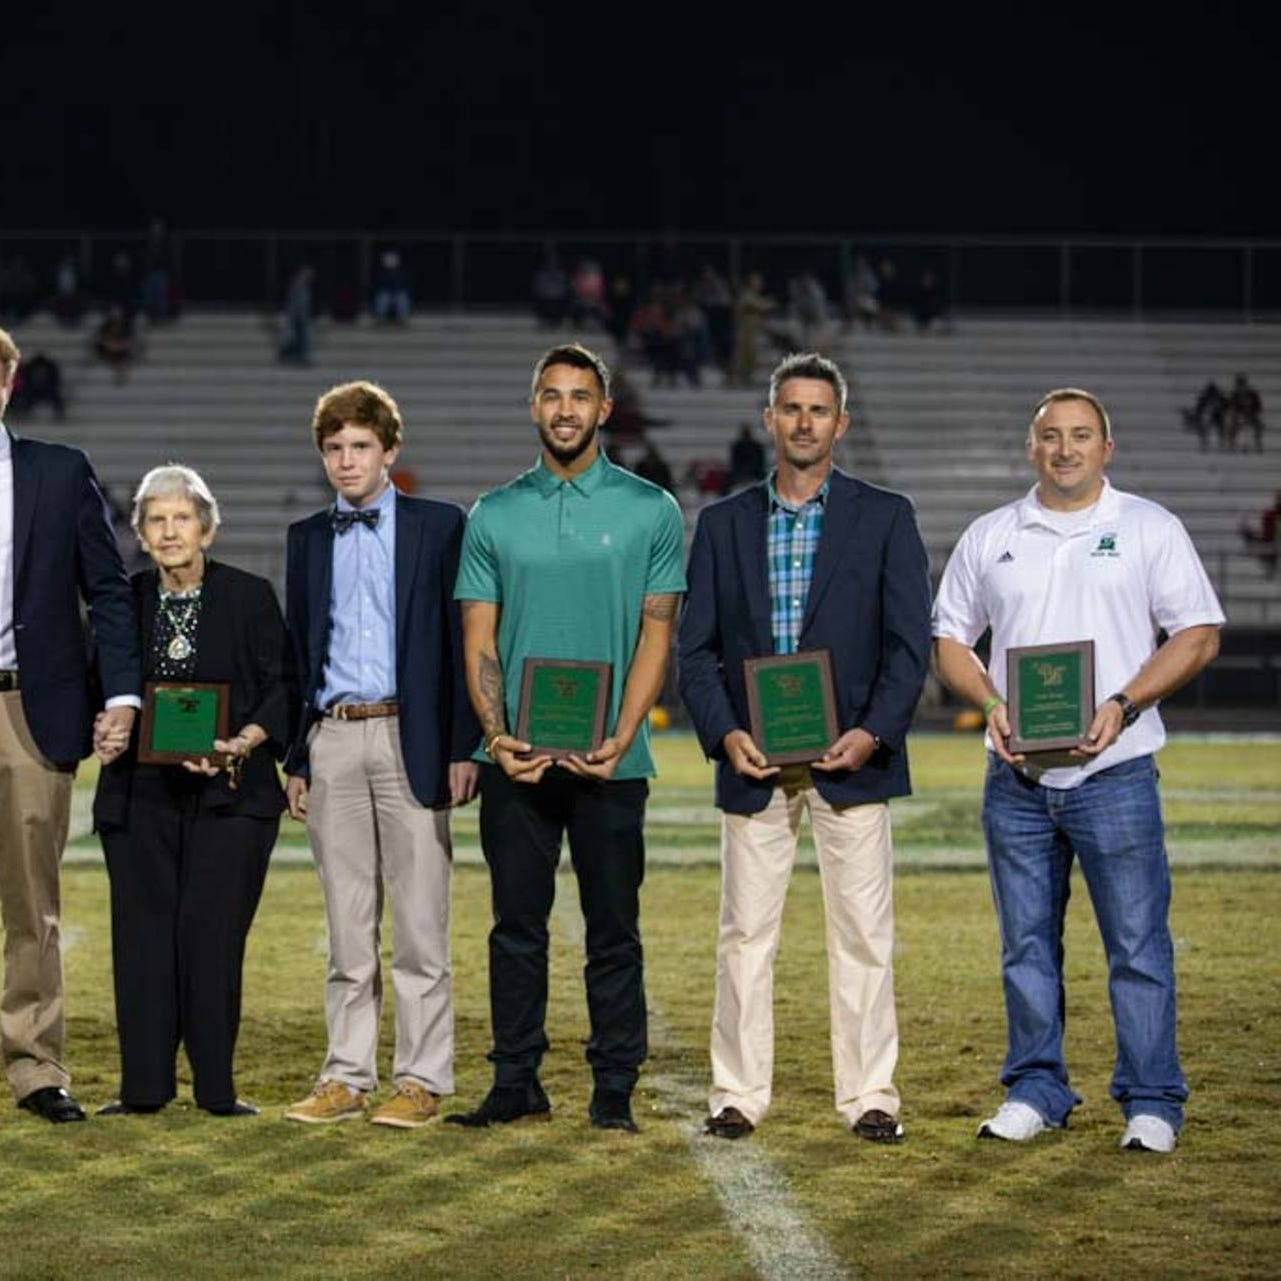 Honored during Easley High School's 2018 Hall of Fame induction were, from left, Sammy Galloway, Sam Houston, Ann King (wife of inductee Gary King, who was joined by their grandchildren), Troy McGowens II, Zach Reeves and Colt Shope.